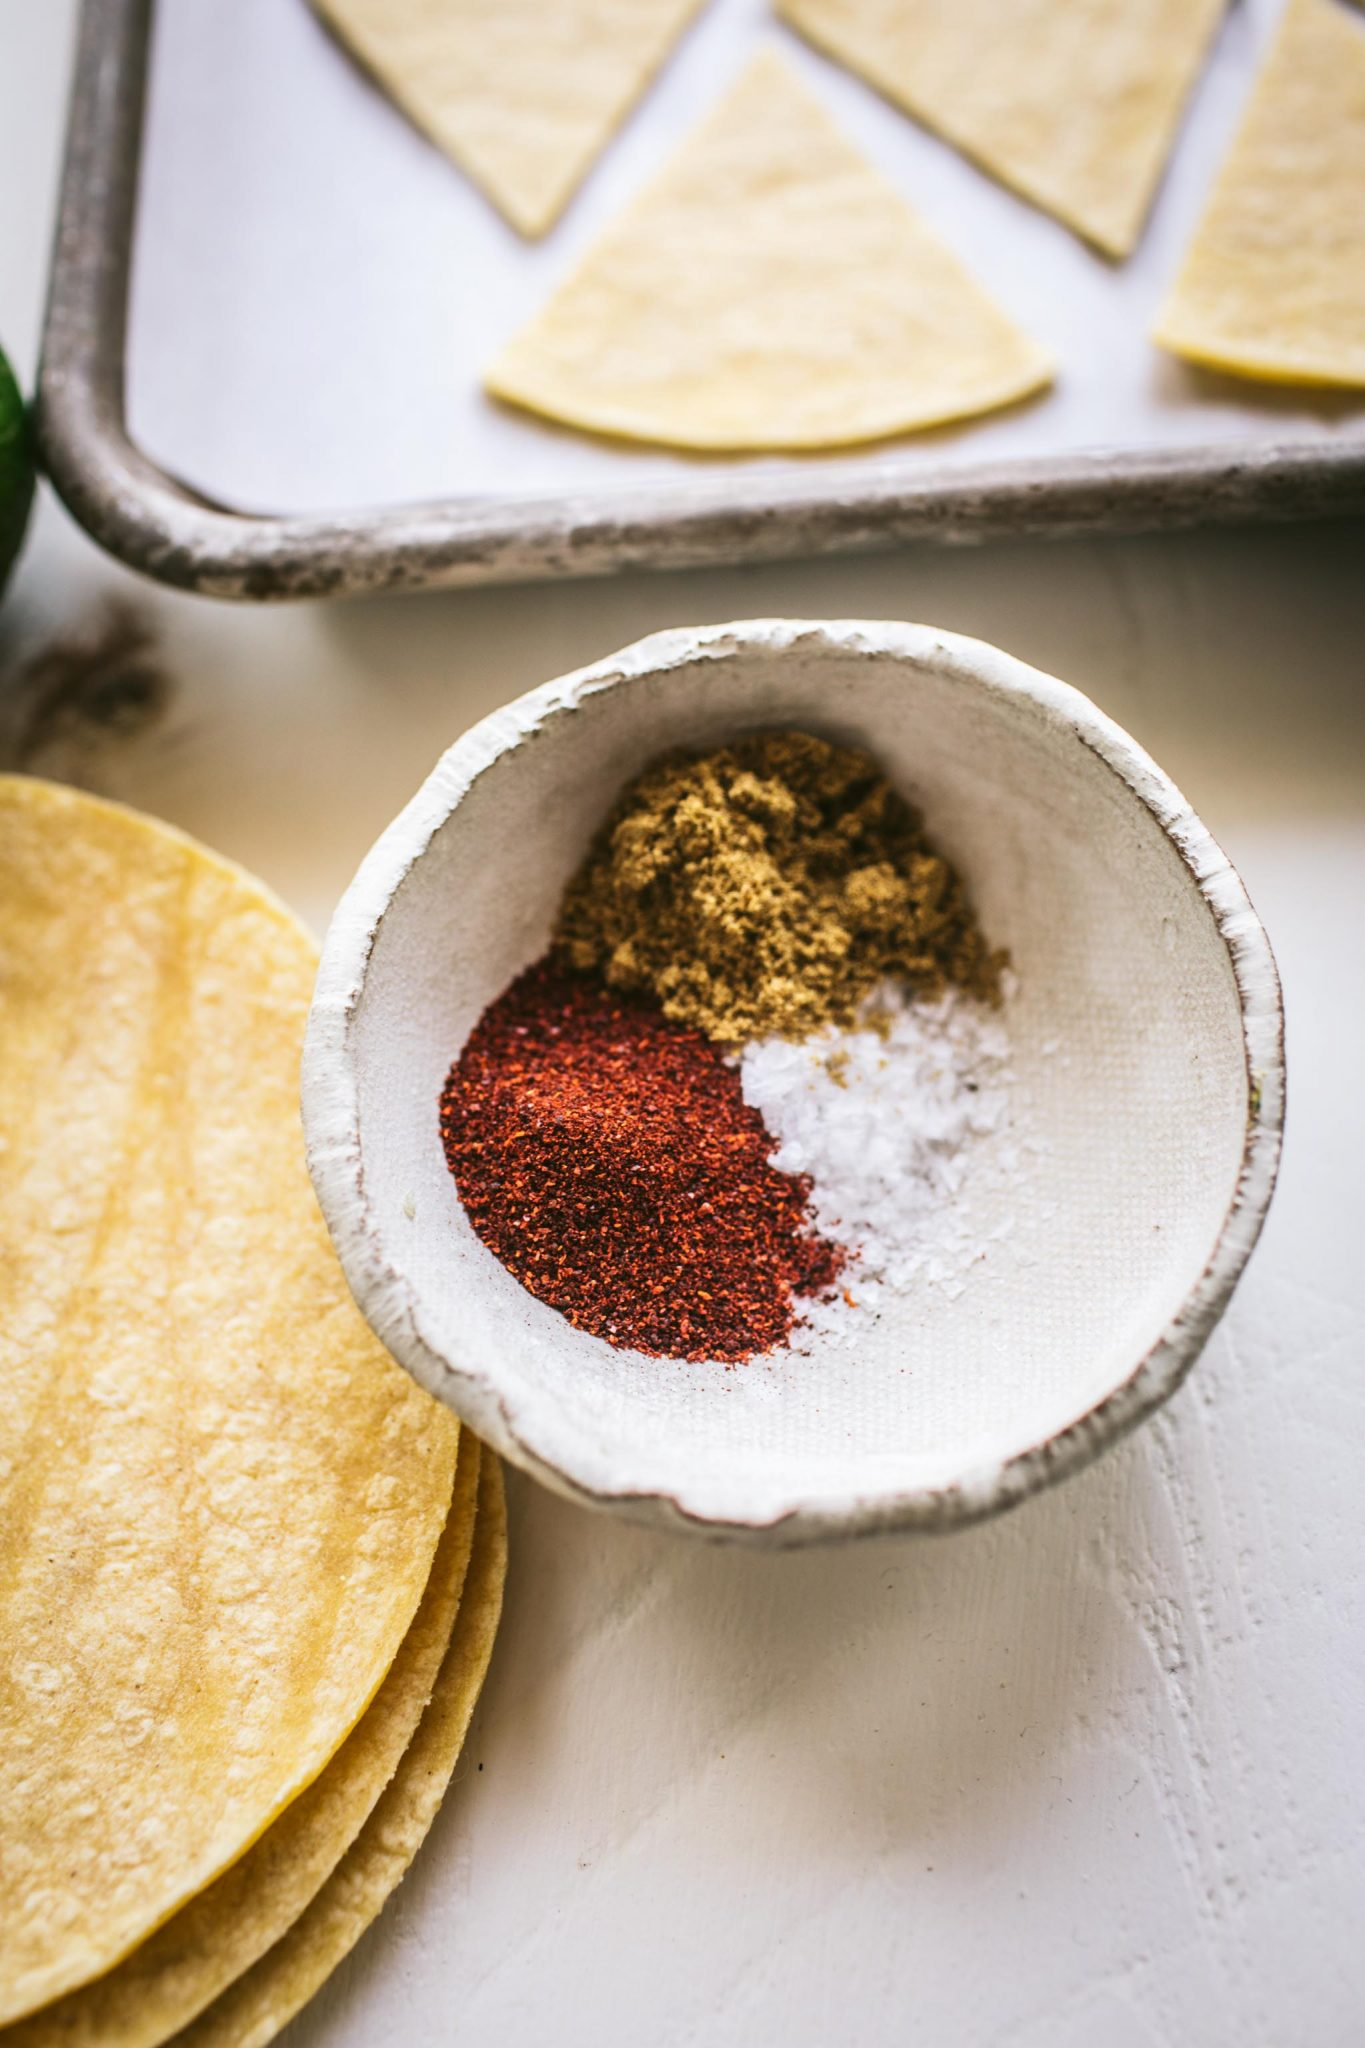 Spice blend for baked tortilla chips.